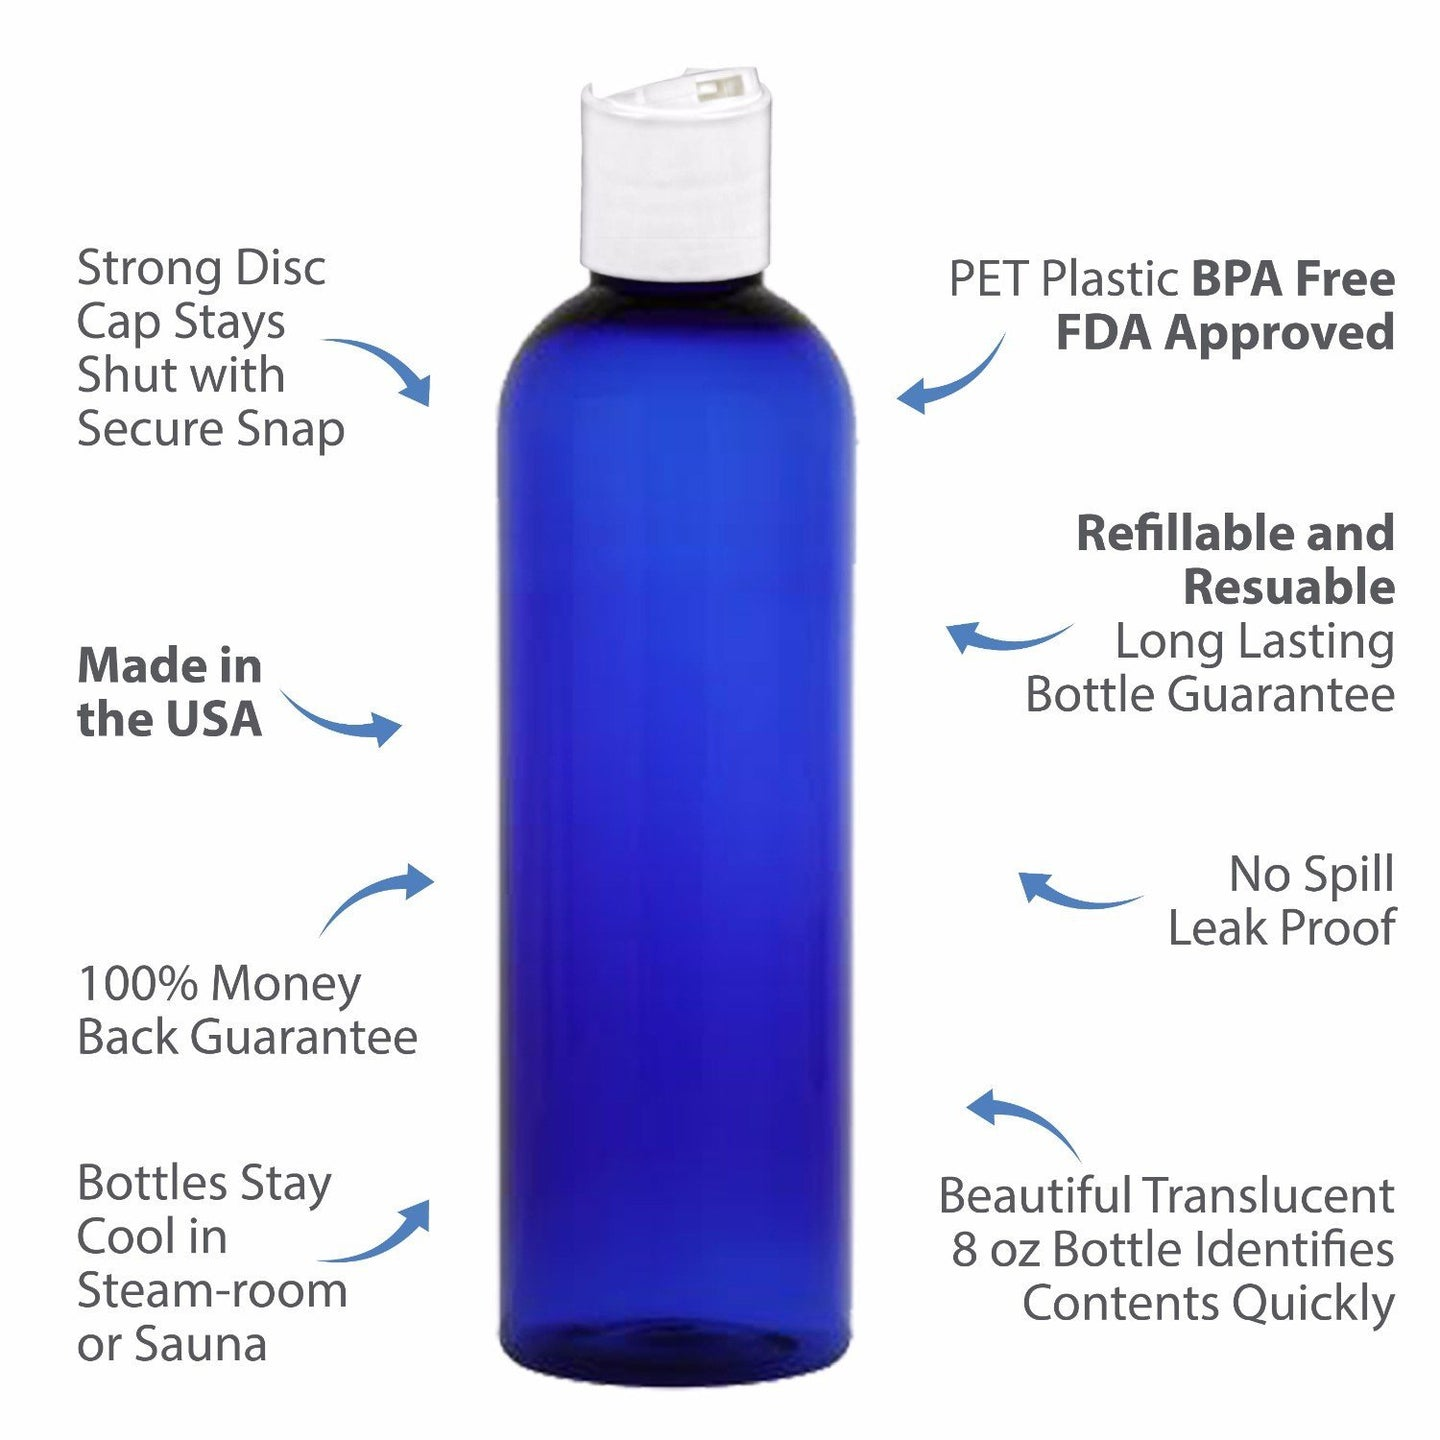 MoYo Natural Labs 4 oz Travel Bottles, Empty Travel Containers with Disc Caps, BPA Free PET Plastic Squeezable Toiletry/Cosmetic Bottles (Neck 24-410) (Pack of 8, Blue)